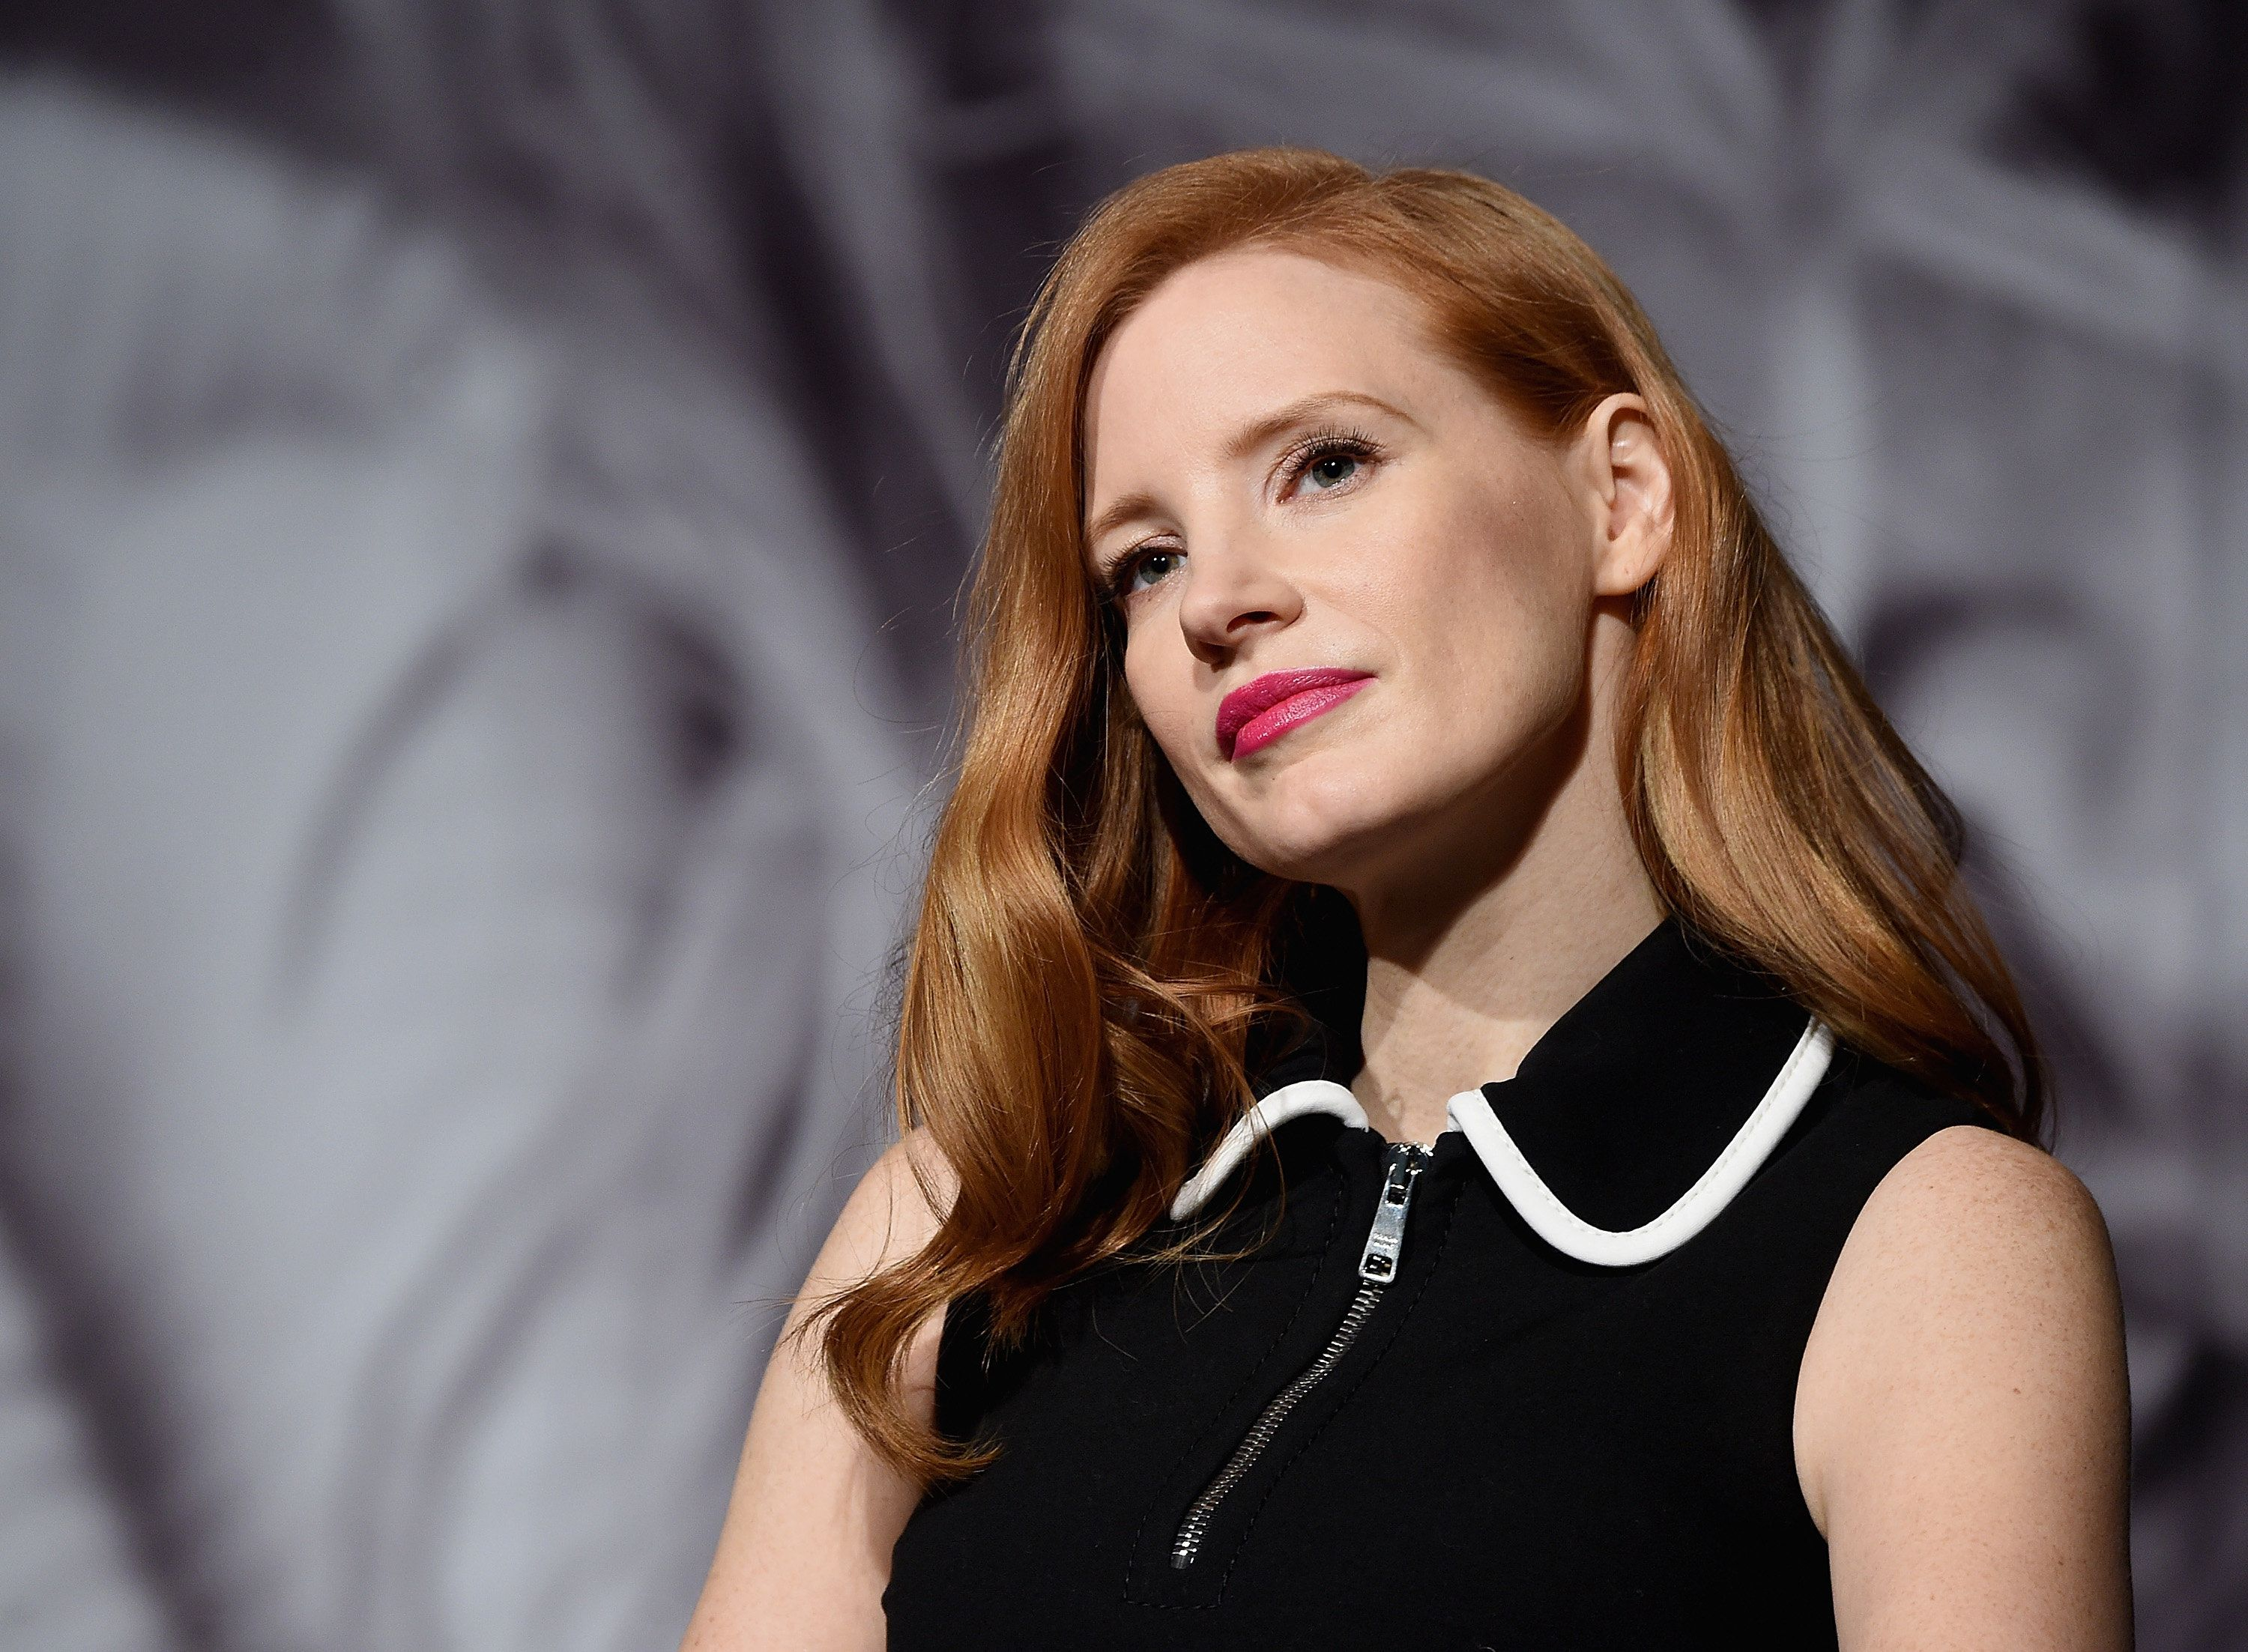 NEW YORK, NY - FEBRUARY 13:  Jessica Chastain attends The Pirelli Calendar Presents: Peter Lindbergh On Beauty panel at Cipriani Wall Street on February 13, 2017 in New York City.  (Photo by Jamie McCarthy/Getty Images)